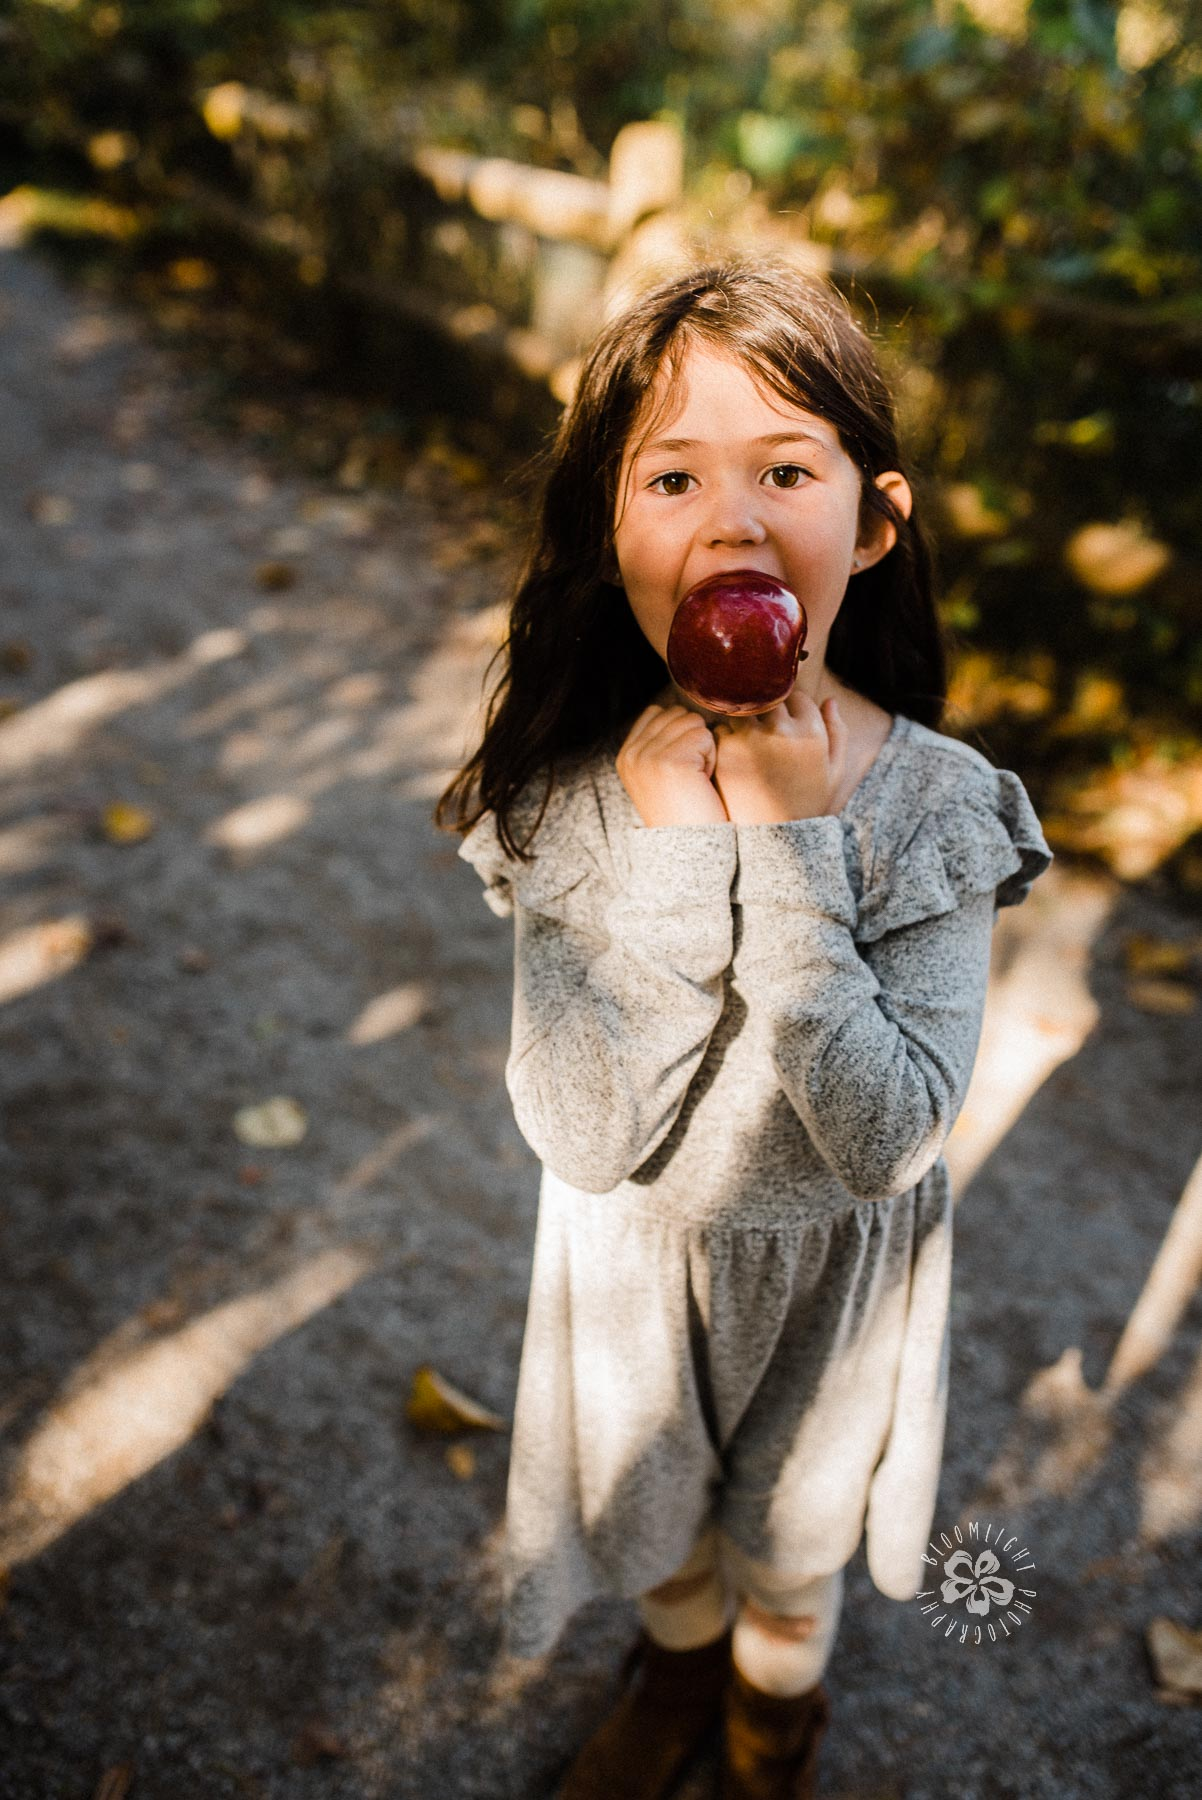 A playful girl holding a red apple in her mouth